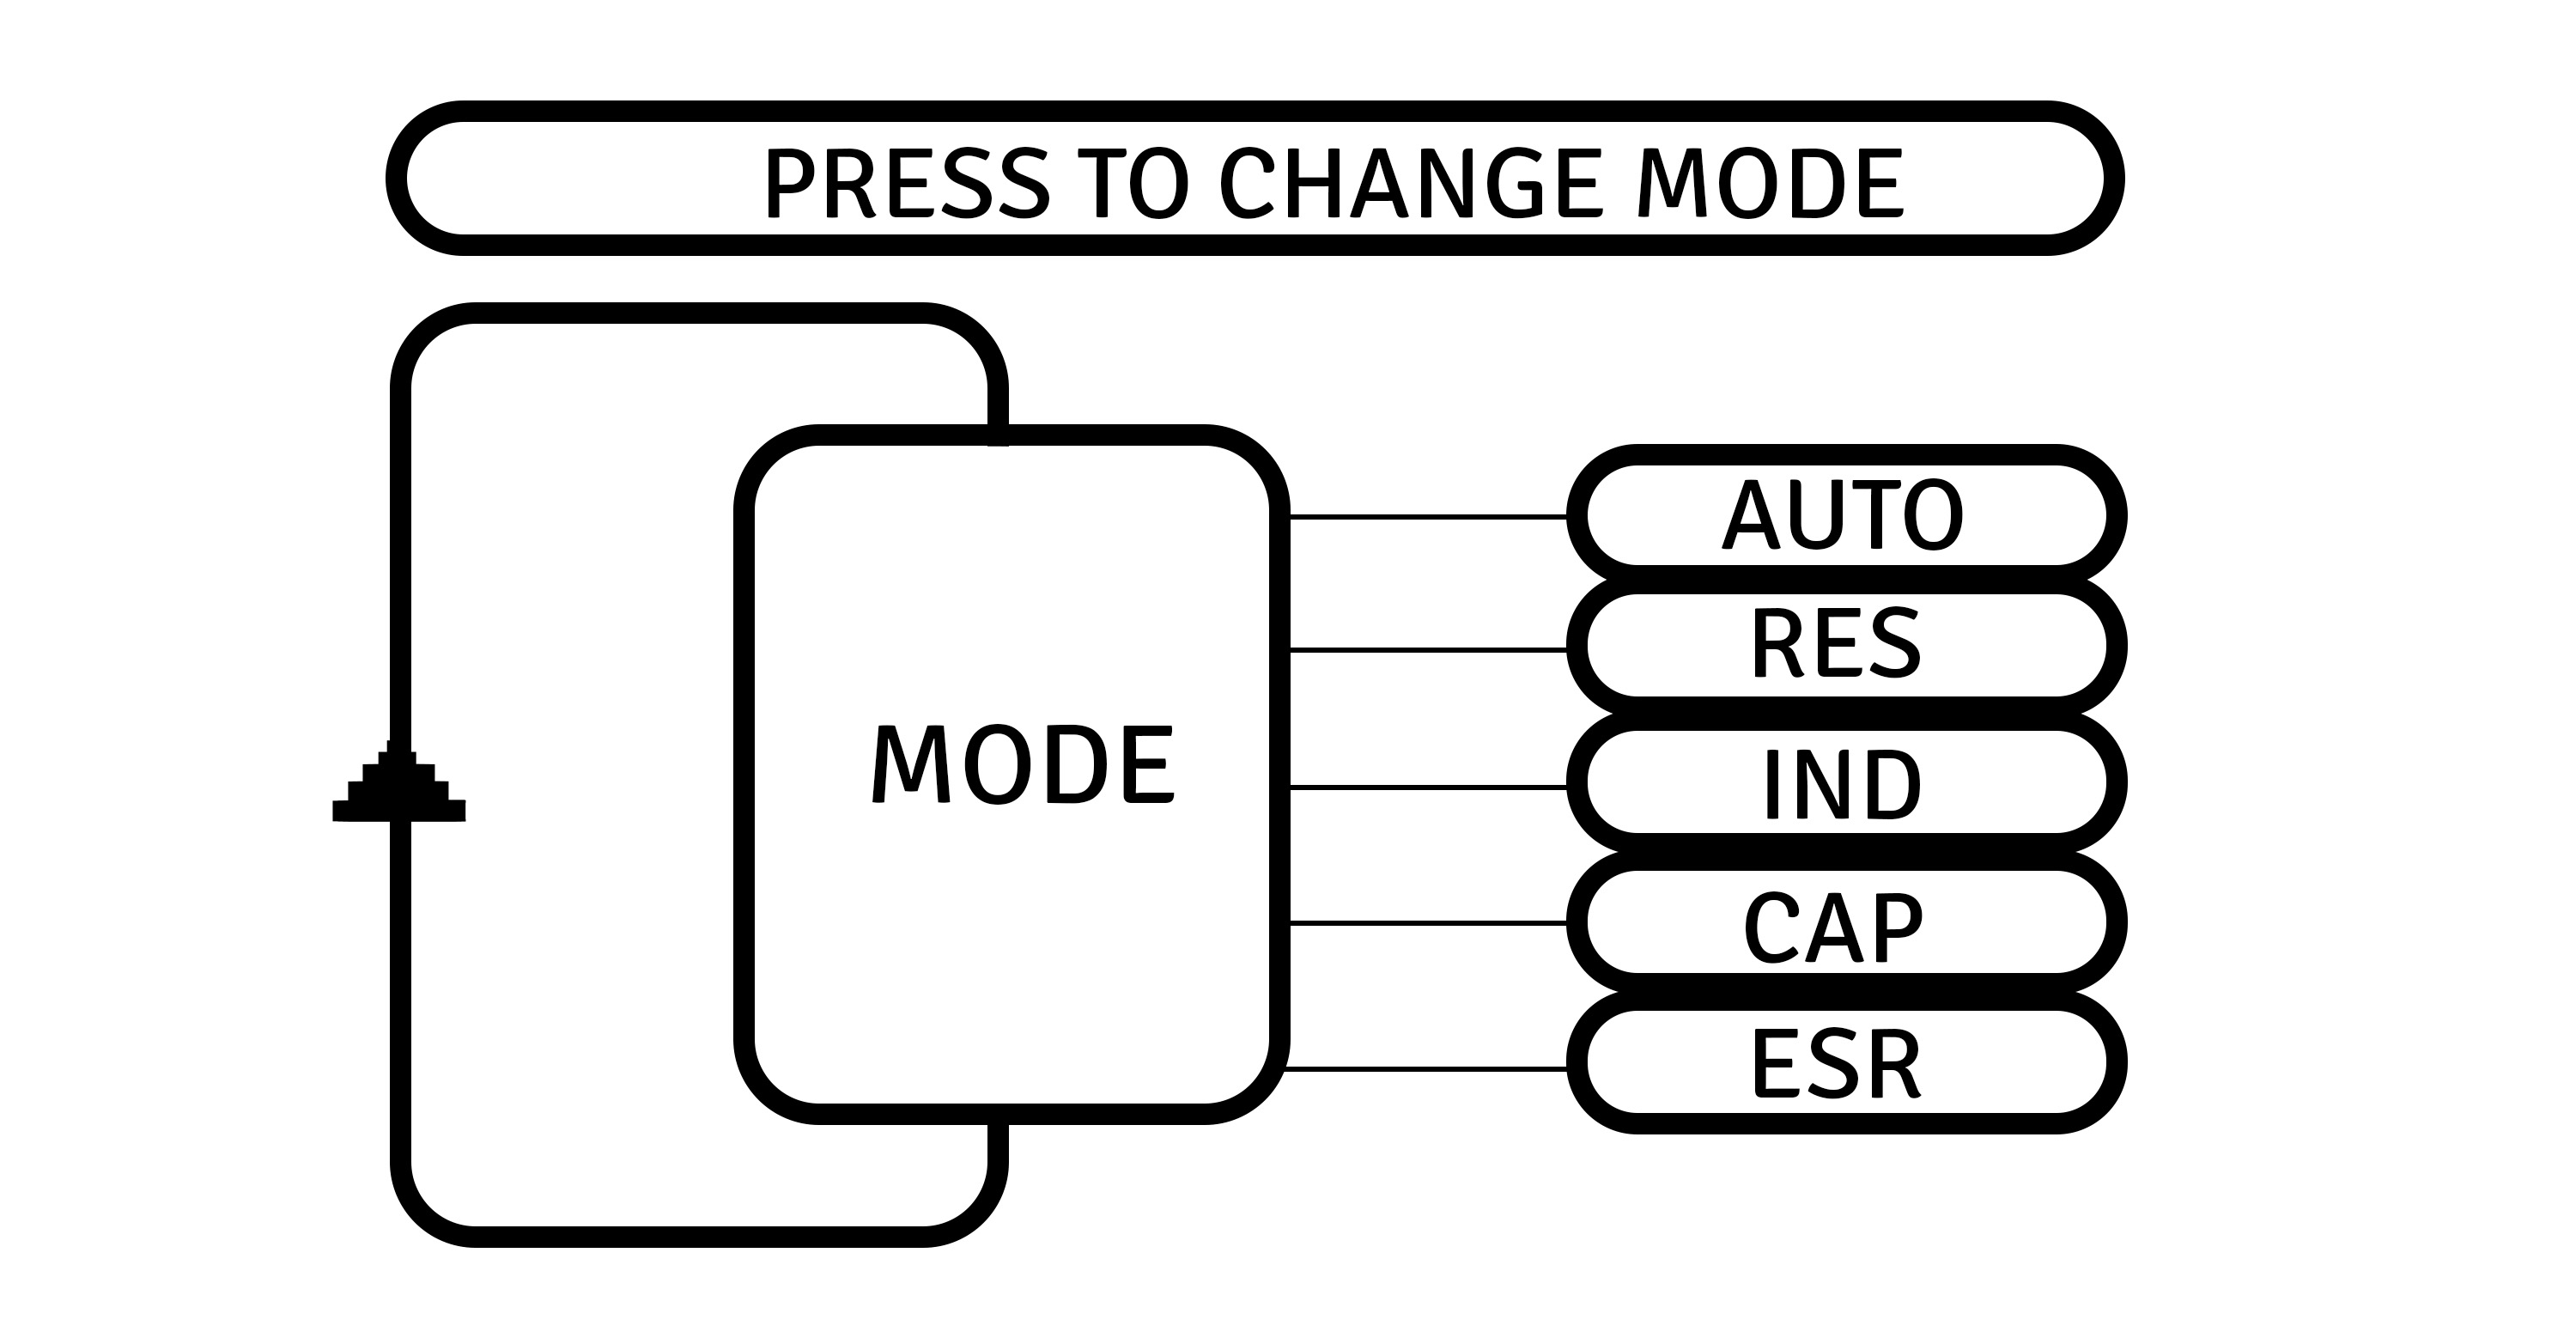 Available modes on the Colibri models